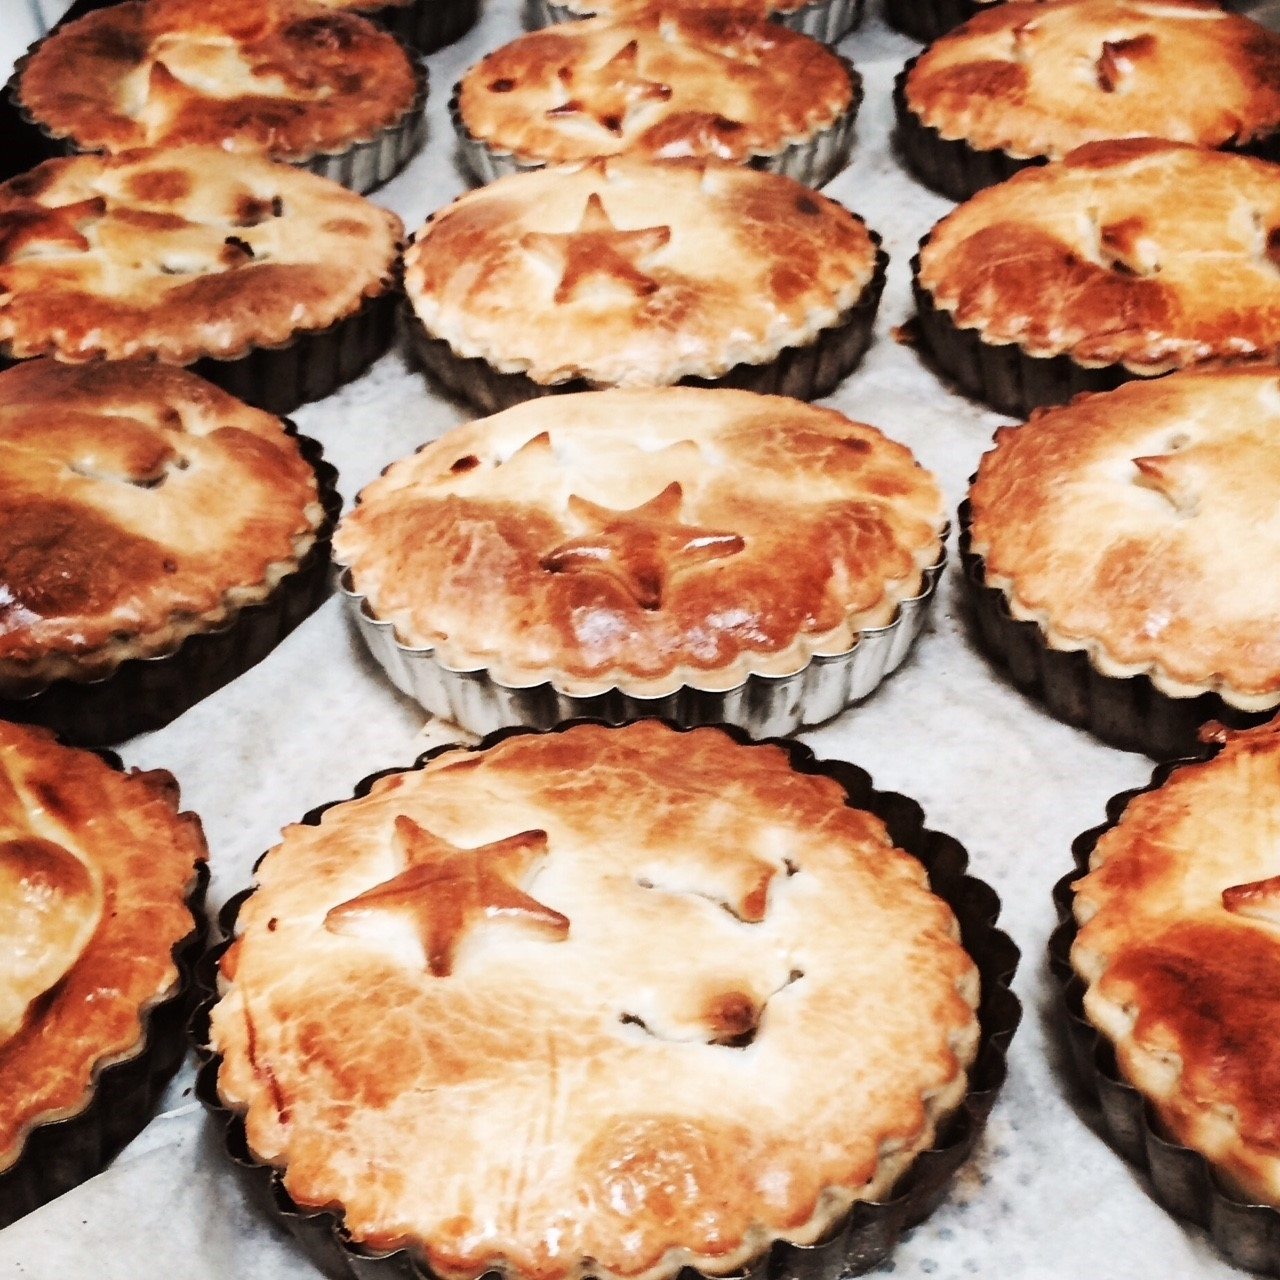 Slow Cooked Beef & Merlot Pies   Retail- Large family sized Pies, Small twin pack pies  Cafe/Deli- Individual small pies